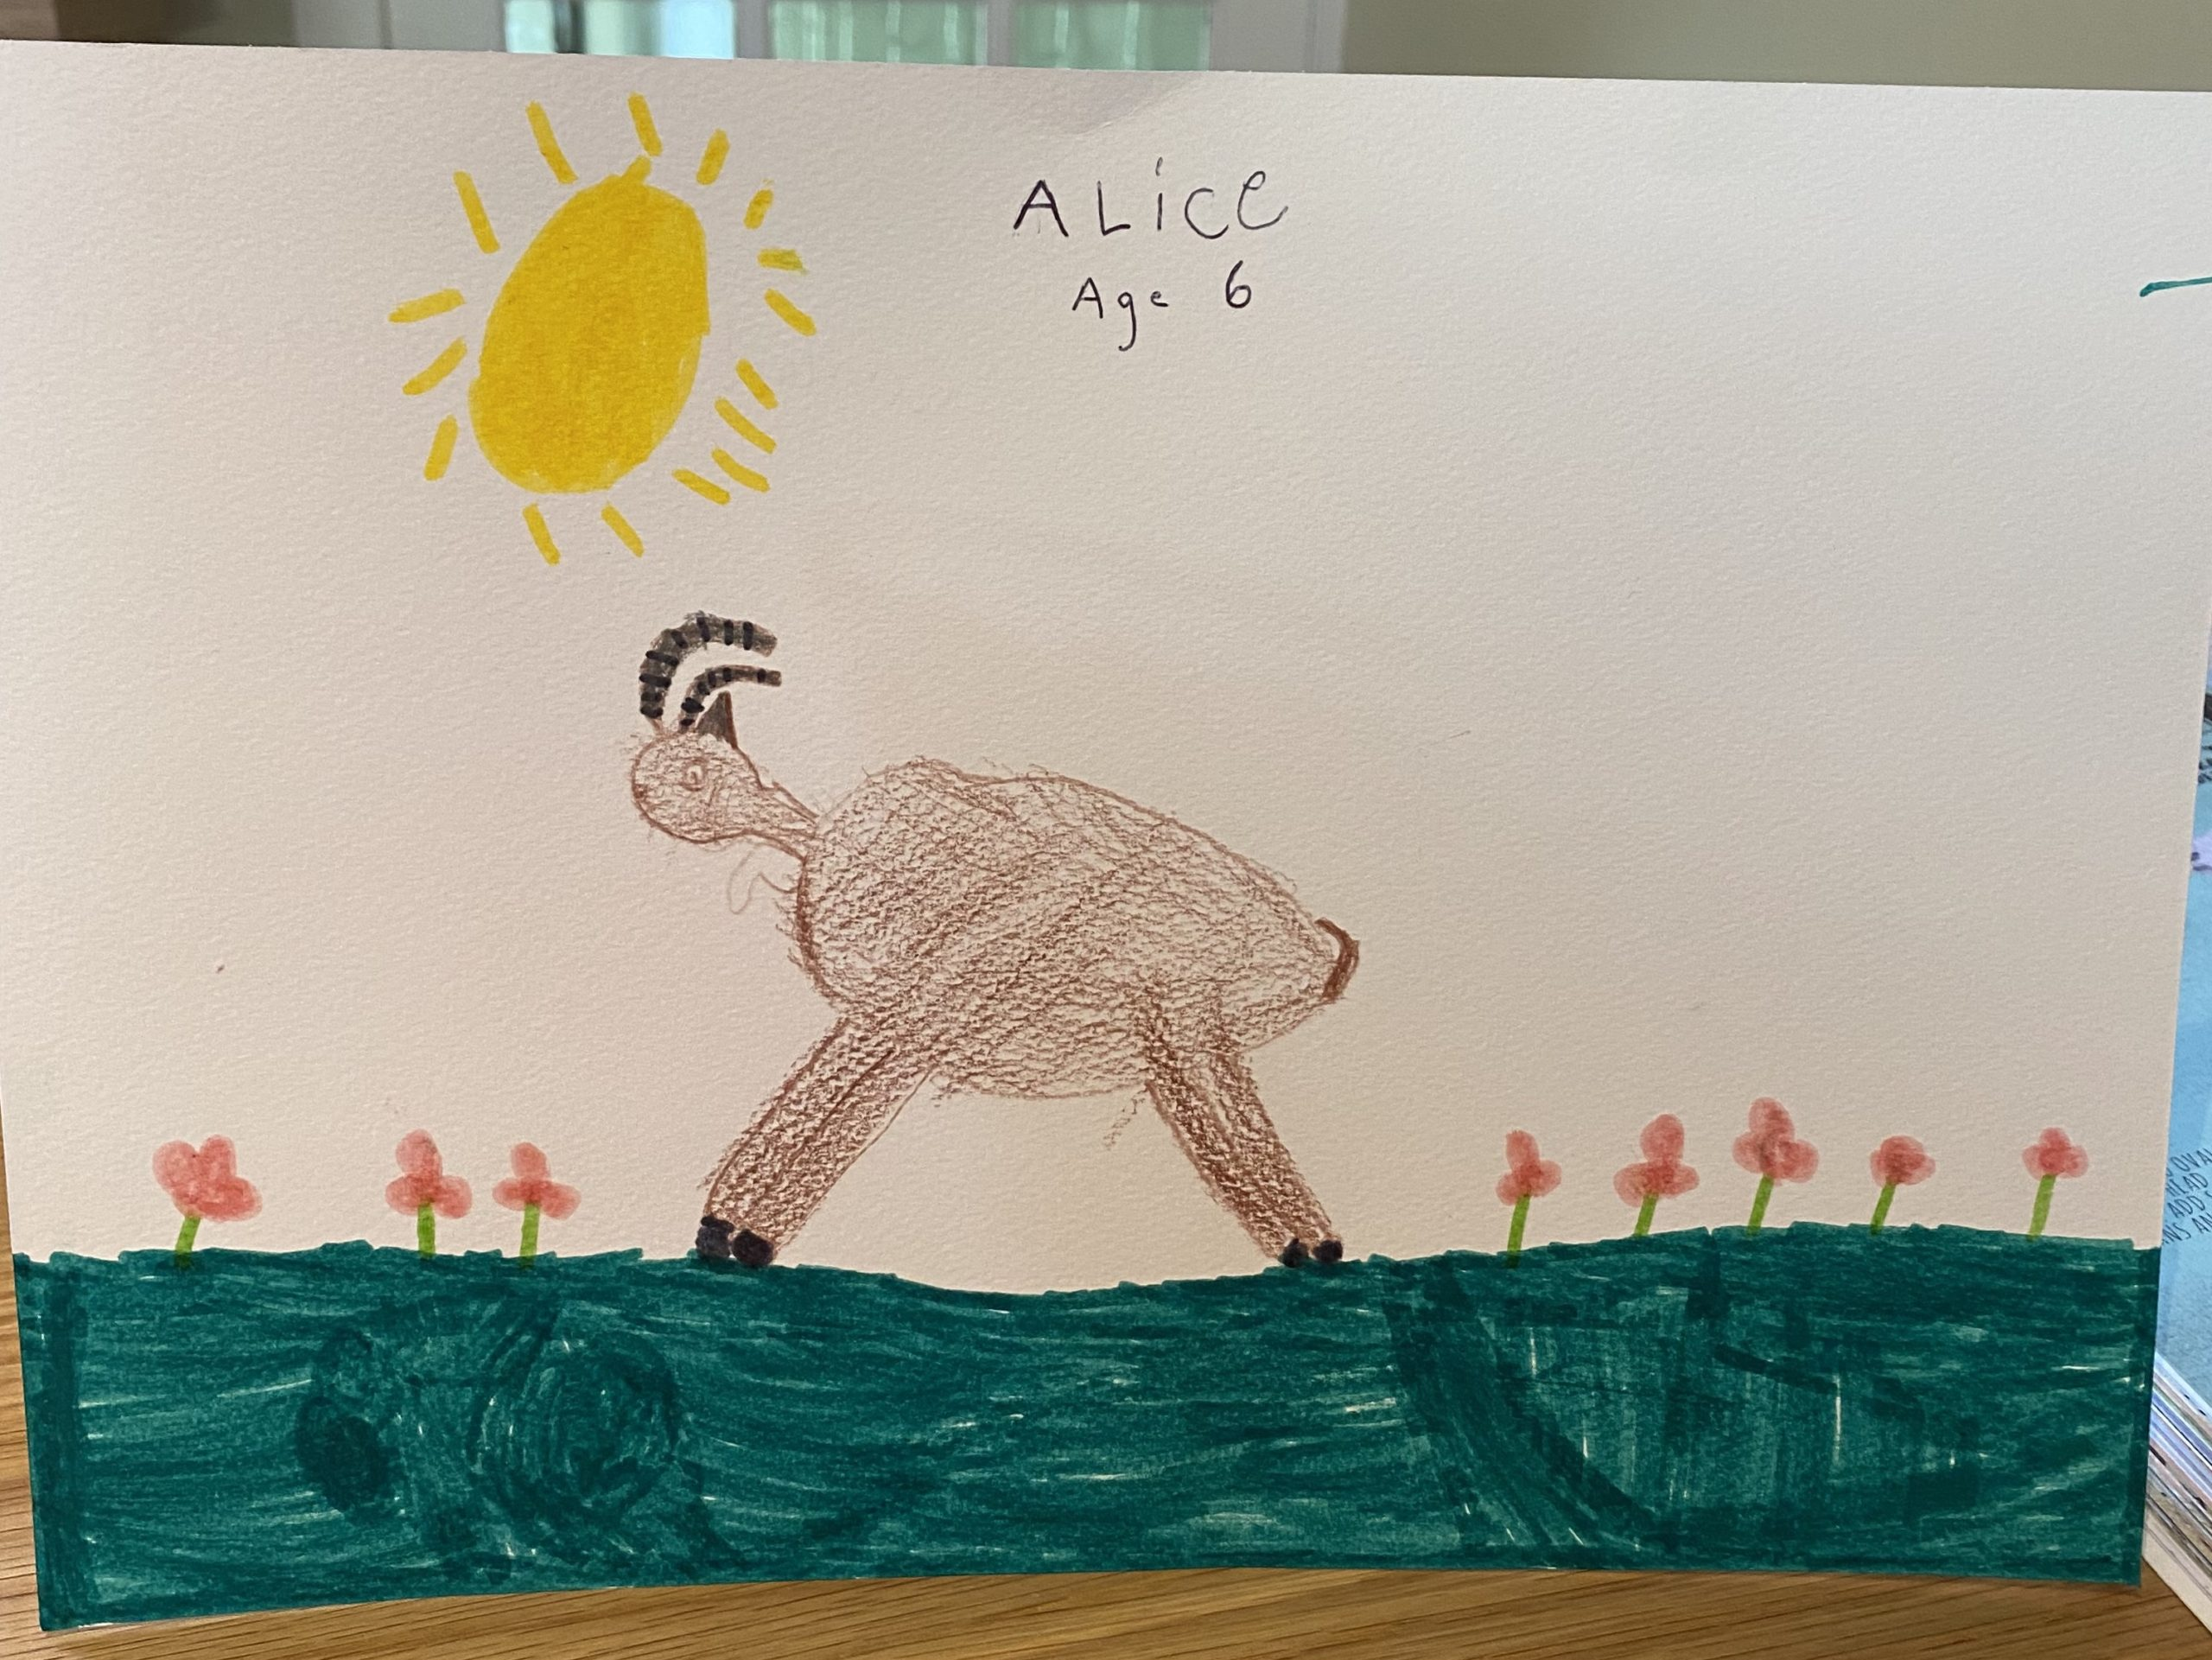 Alice Armstrong, Age 6